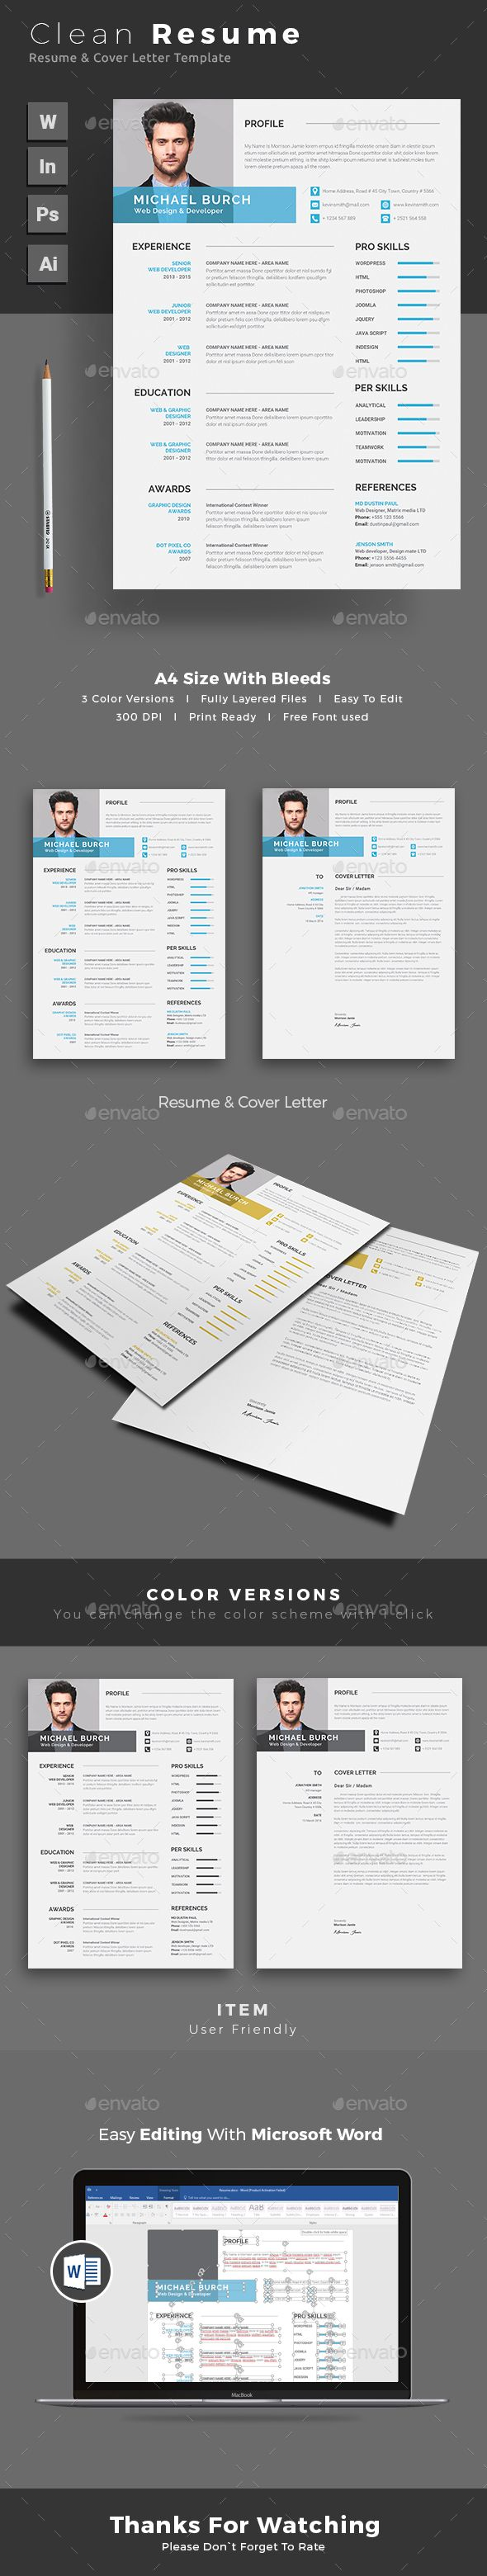 Resume 109 best Creative Resumes images on